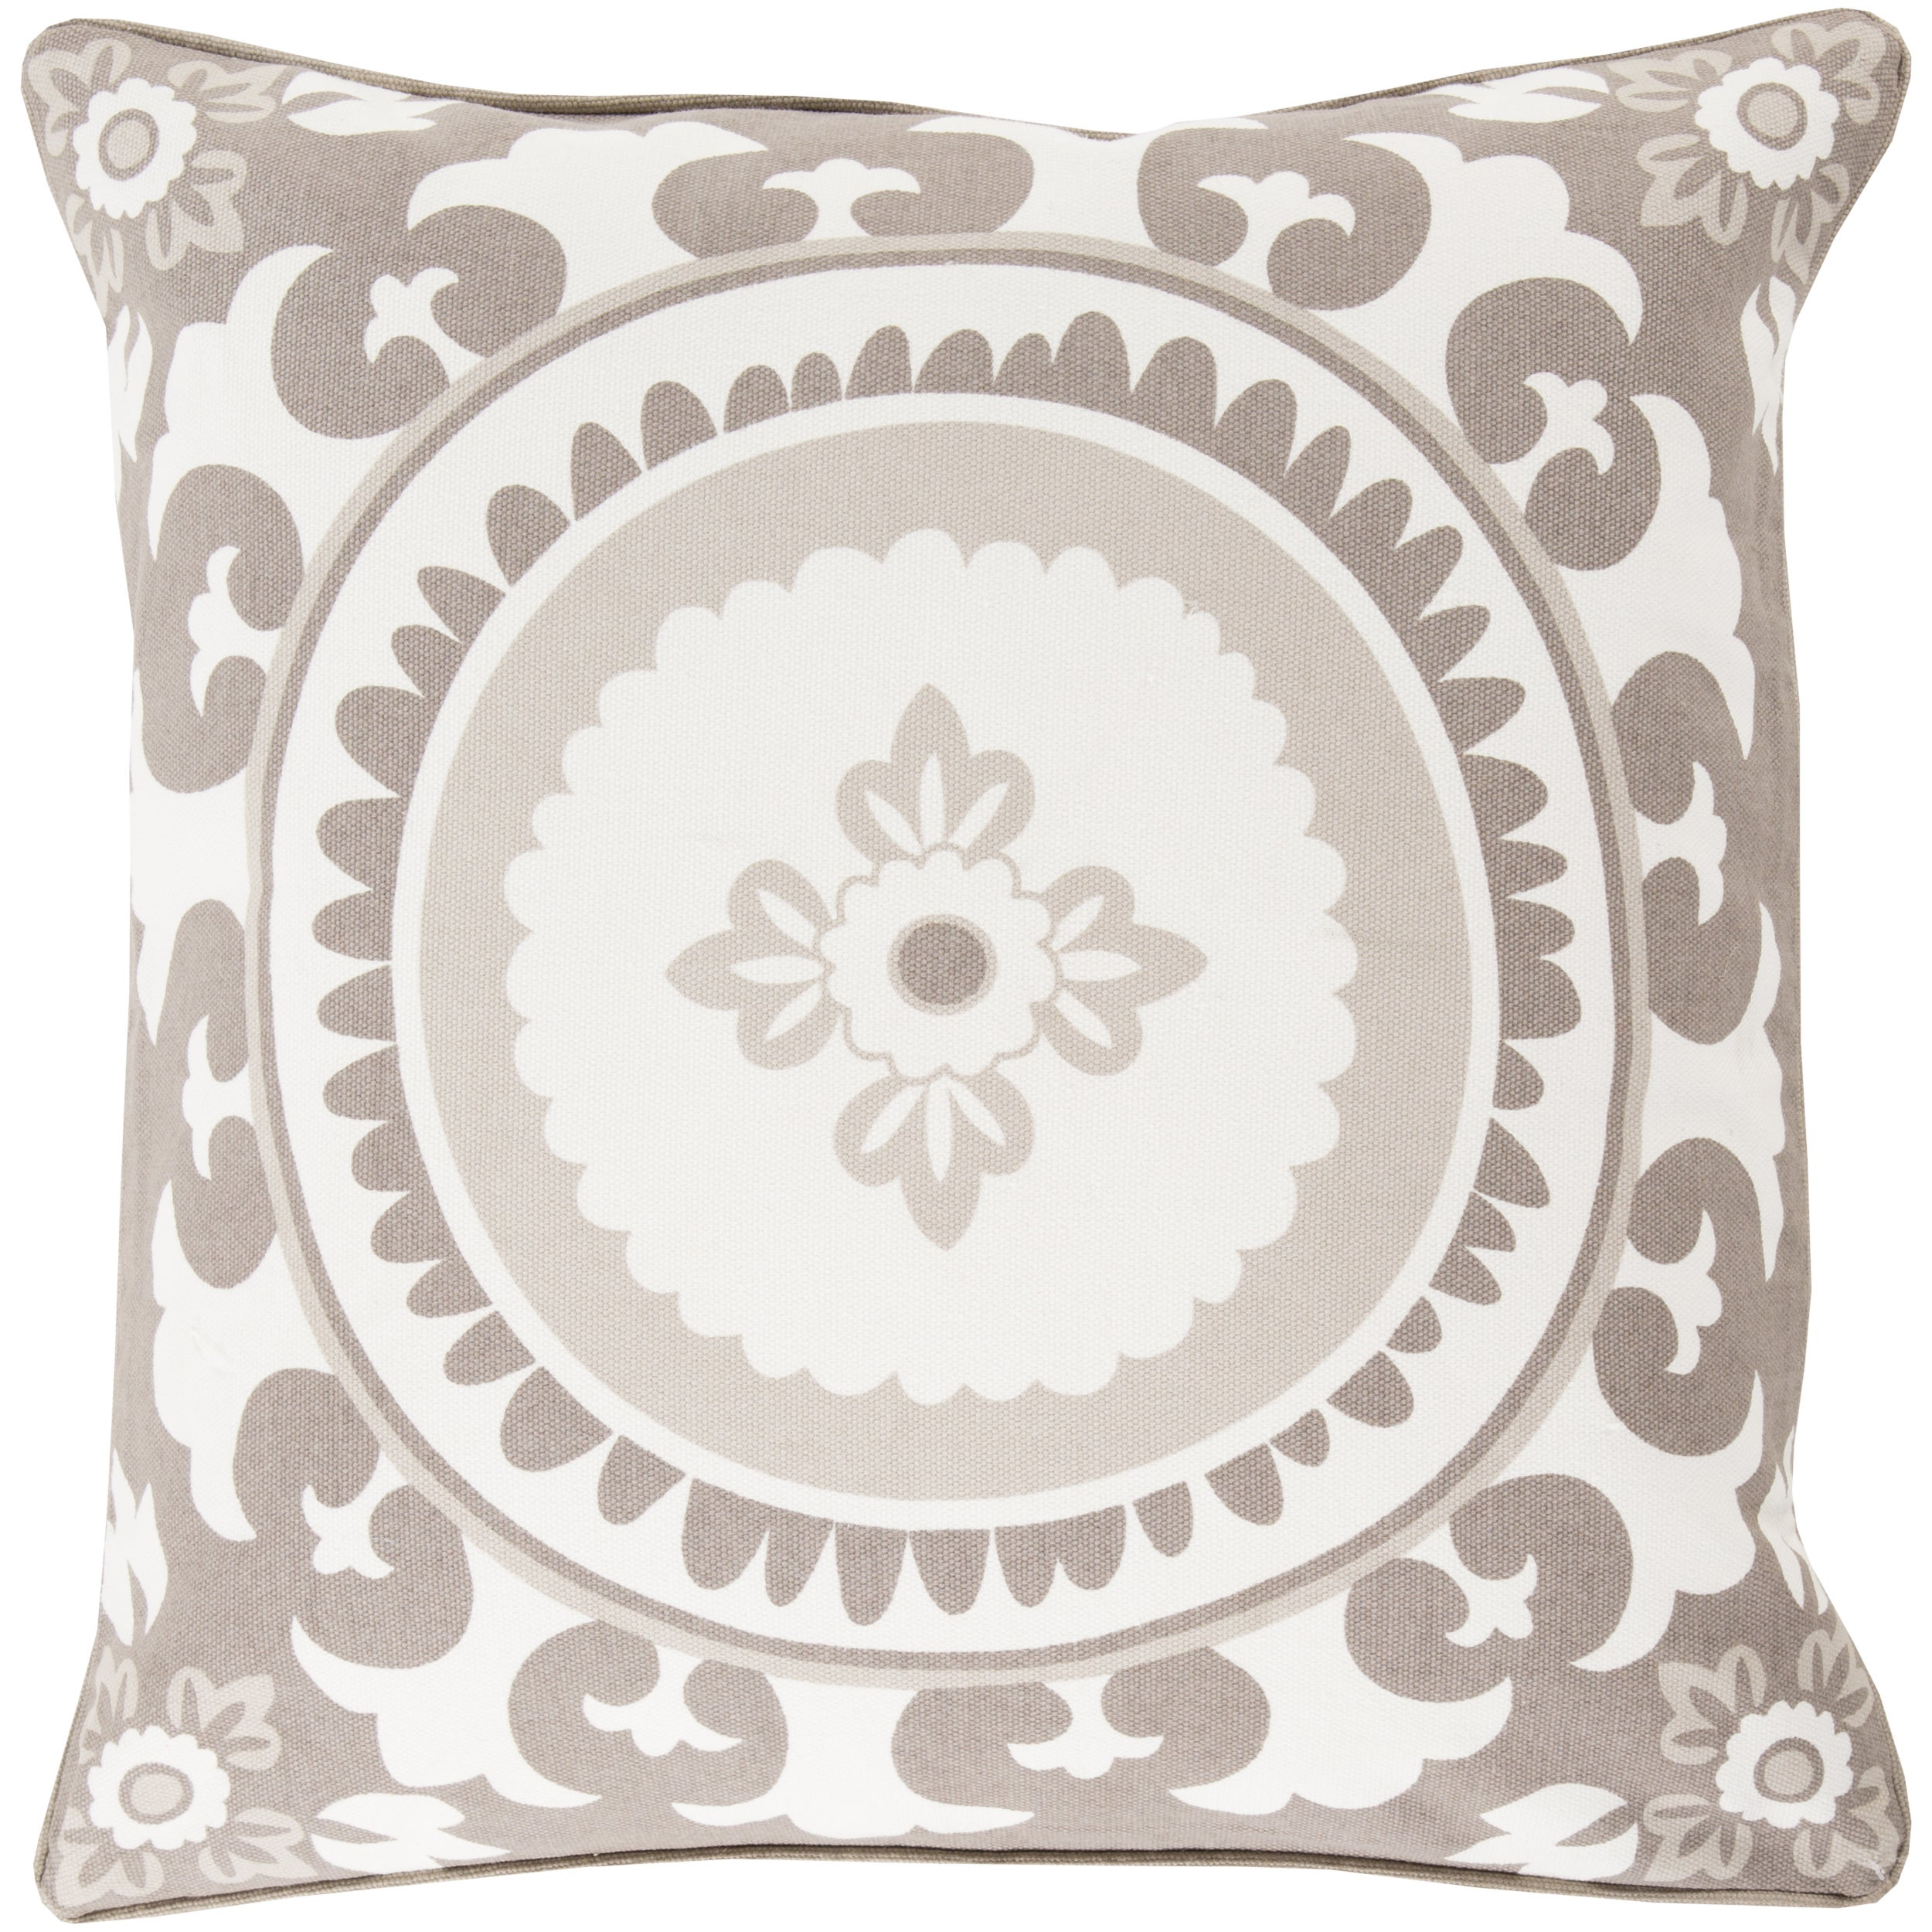 Decorative Carmen Floral Feather Down or Polyester Filled 22-inch Pillow (Polyester)